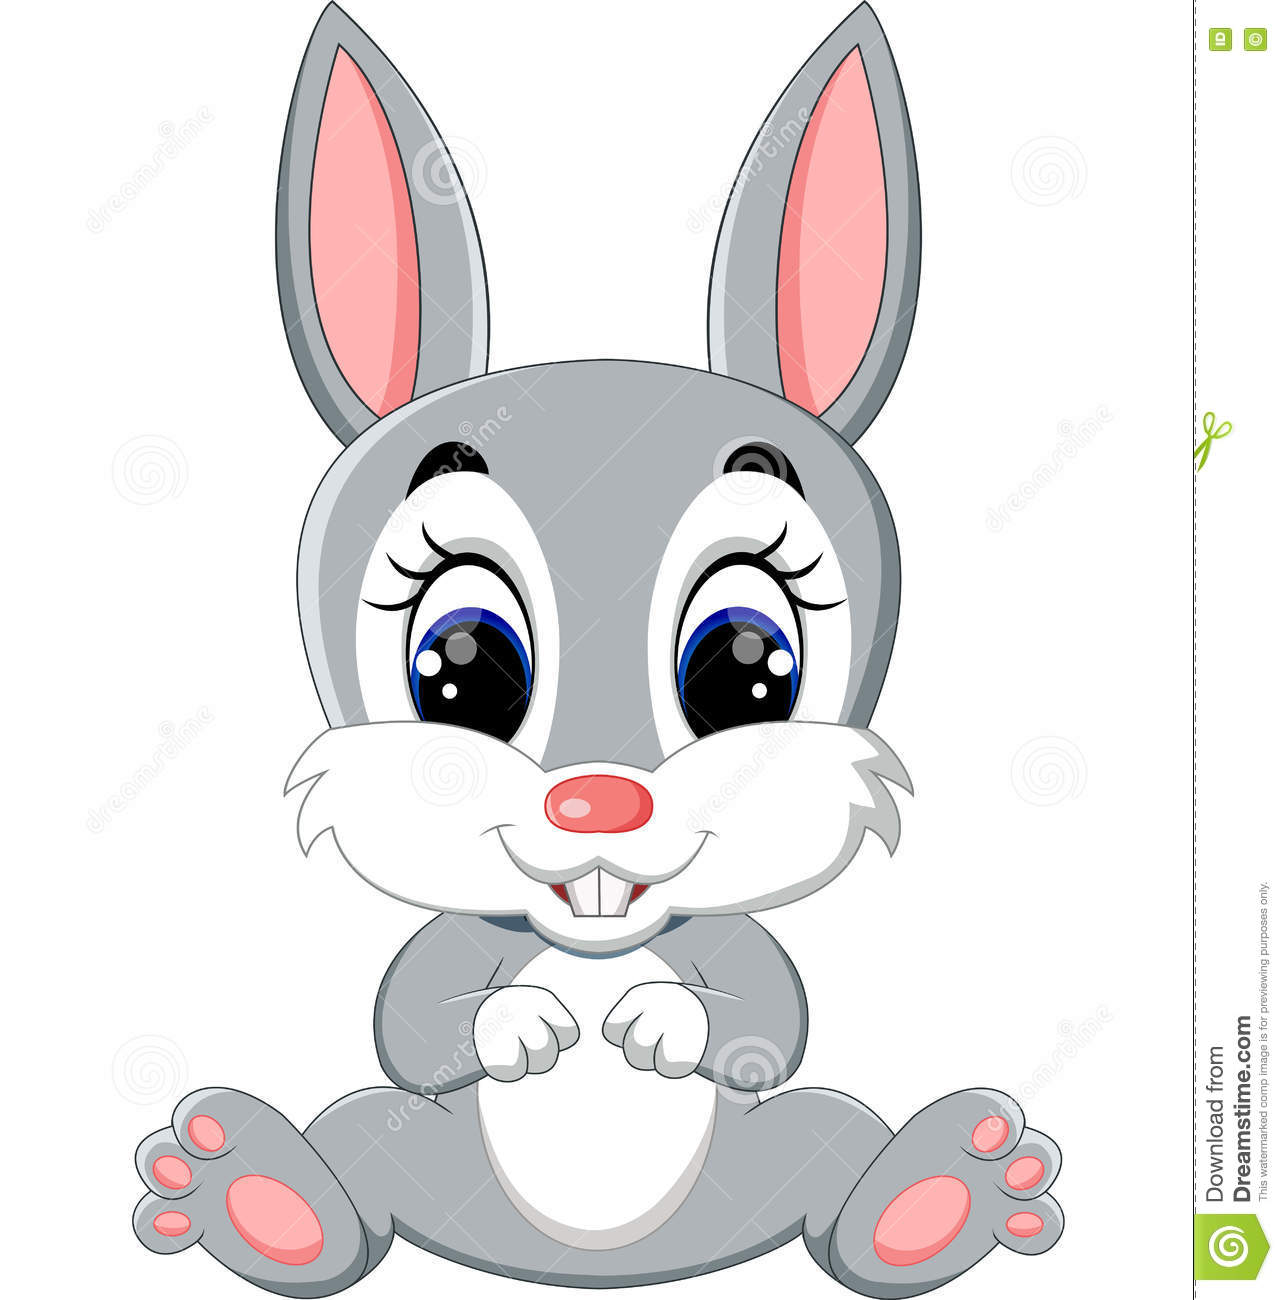 Lapin mignon de dessin anim illustration de vecteur illustration du fond adorable 72874235 - Dessin lapin mignon ...